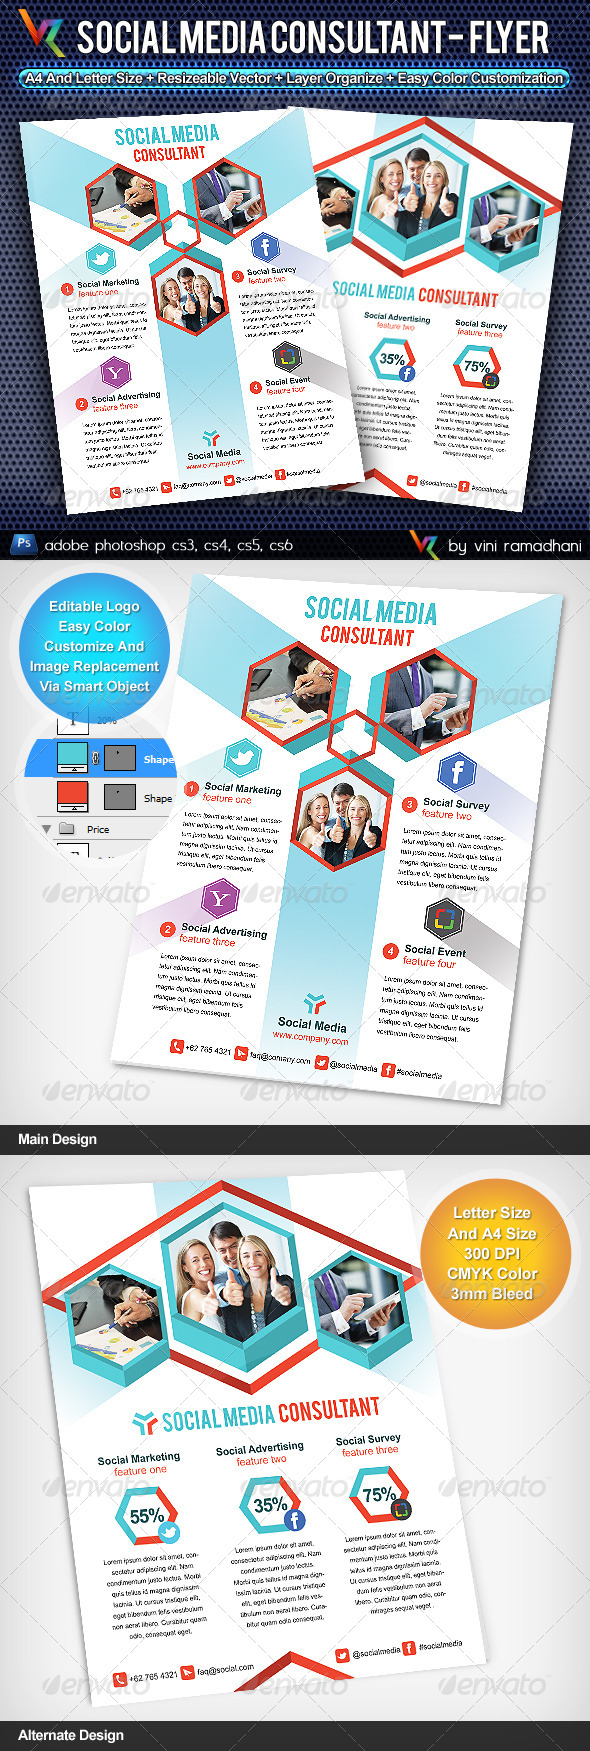 Social Media Consultant Flyer Or Advertising - Corporate Flyers